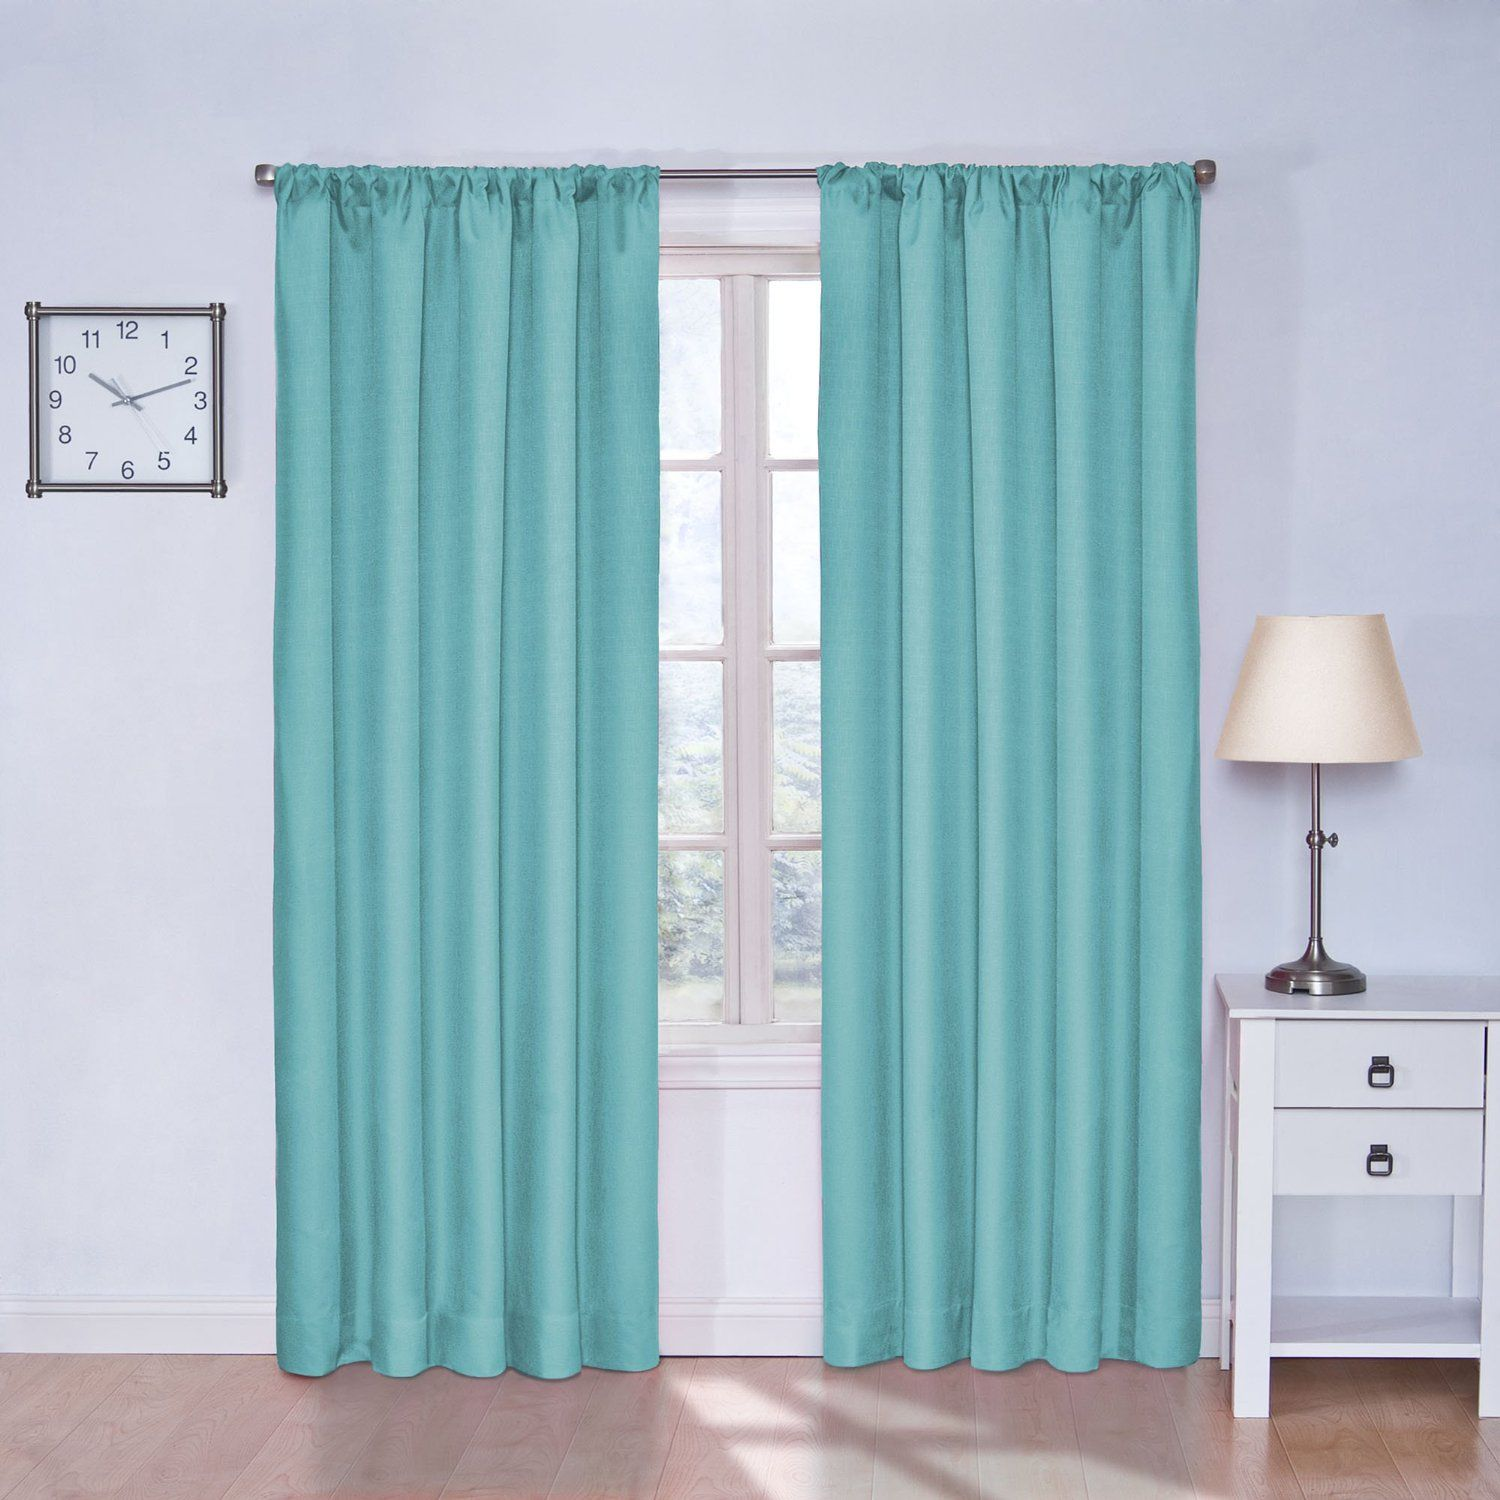 blue for living panels thermal with full scarf also com teal galleria of and navy room brown size grey green orange grommets inch panel short your ivory ideas black grommet velvet striped curtains blackout light white long choice curtain yellow amazon blocking sheer